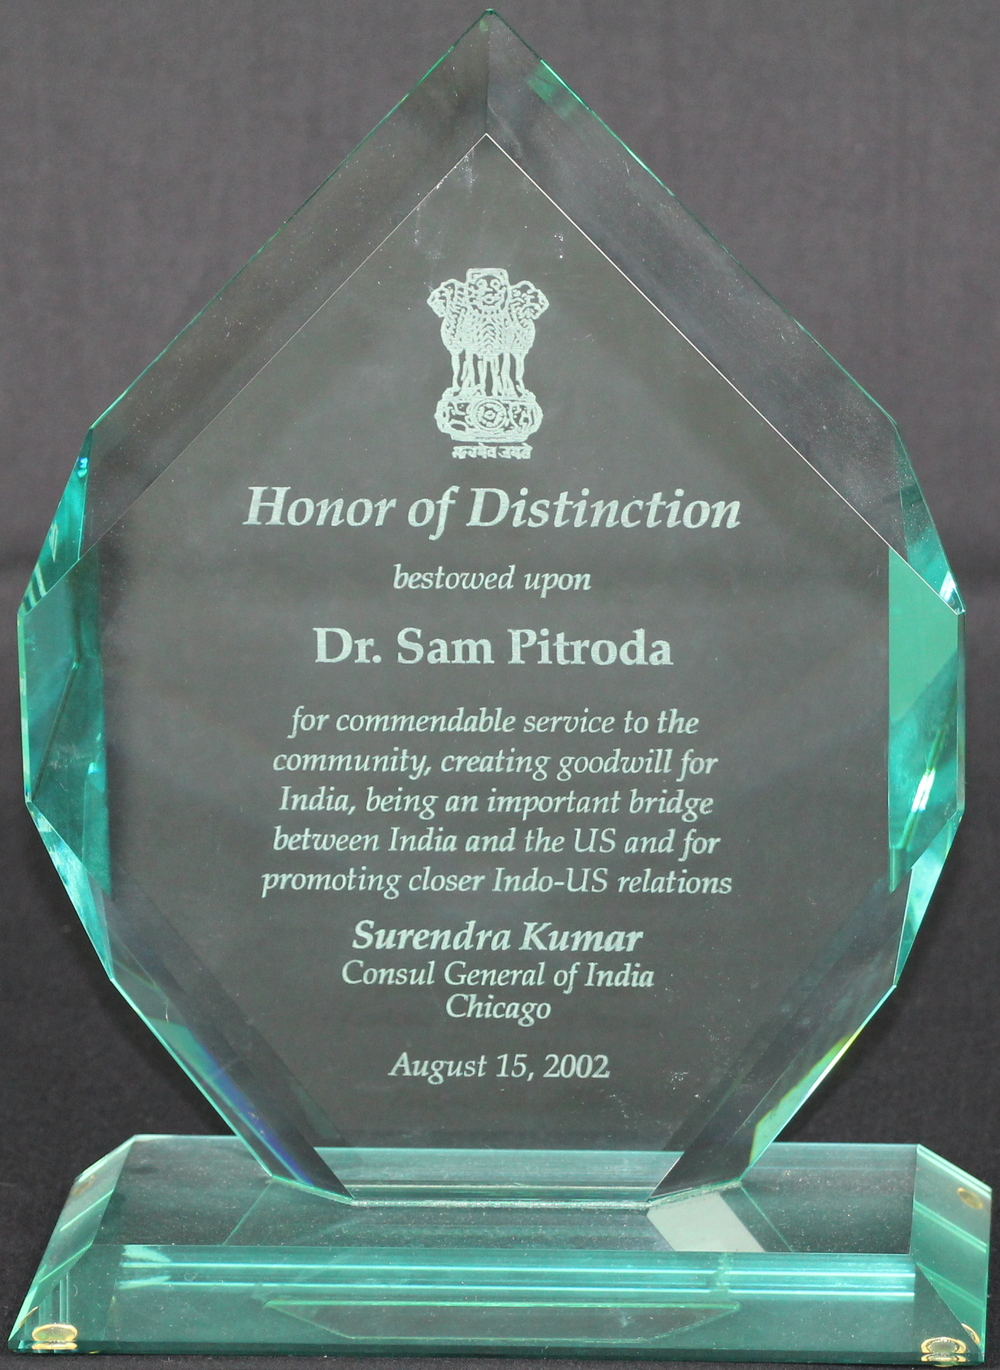 Honor of Distinction, from Surendra Kumar, Consul General of India, Chicago, 2002